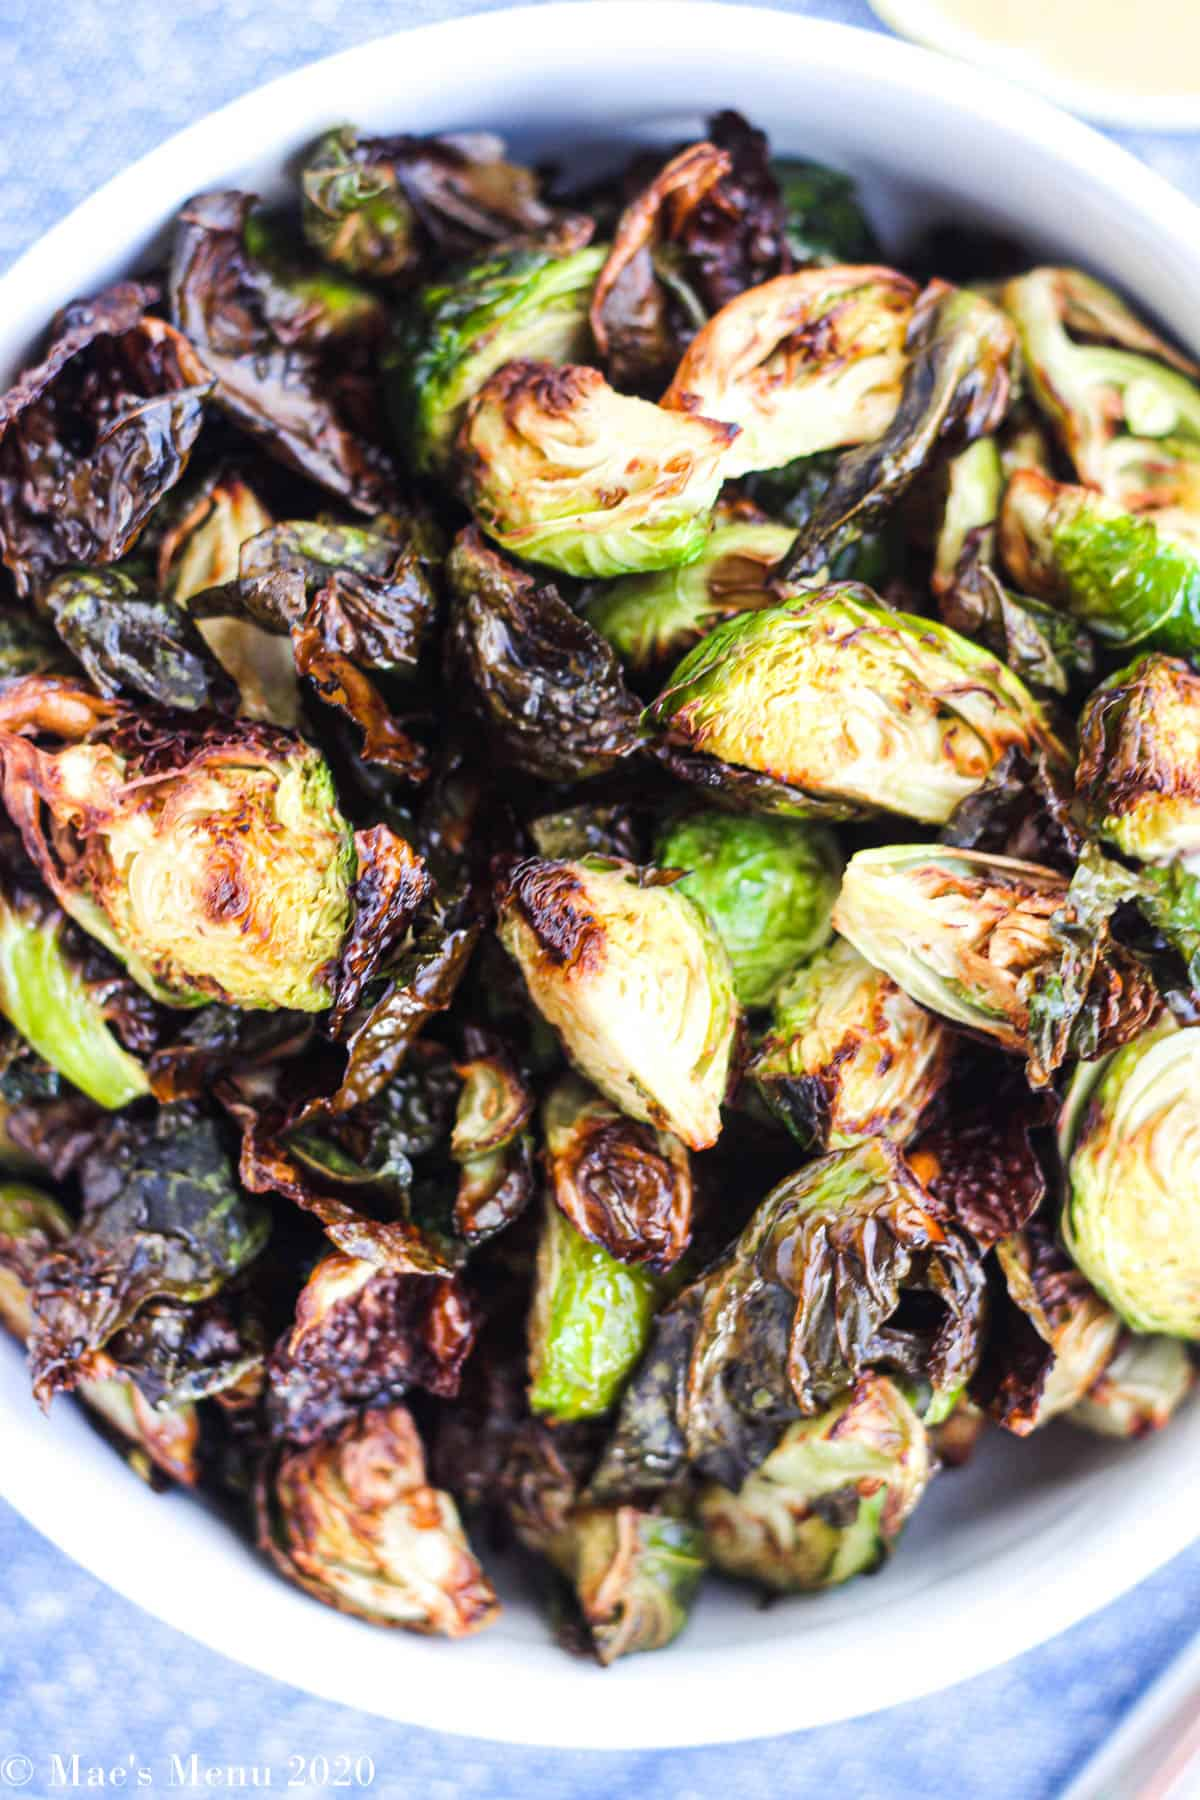 An up-close overhead shot of a bowl of air fryer brussels sprouts